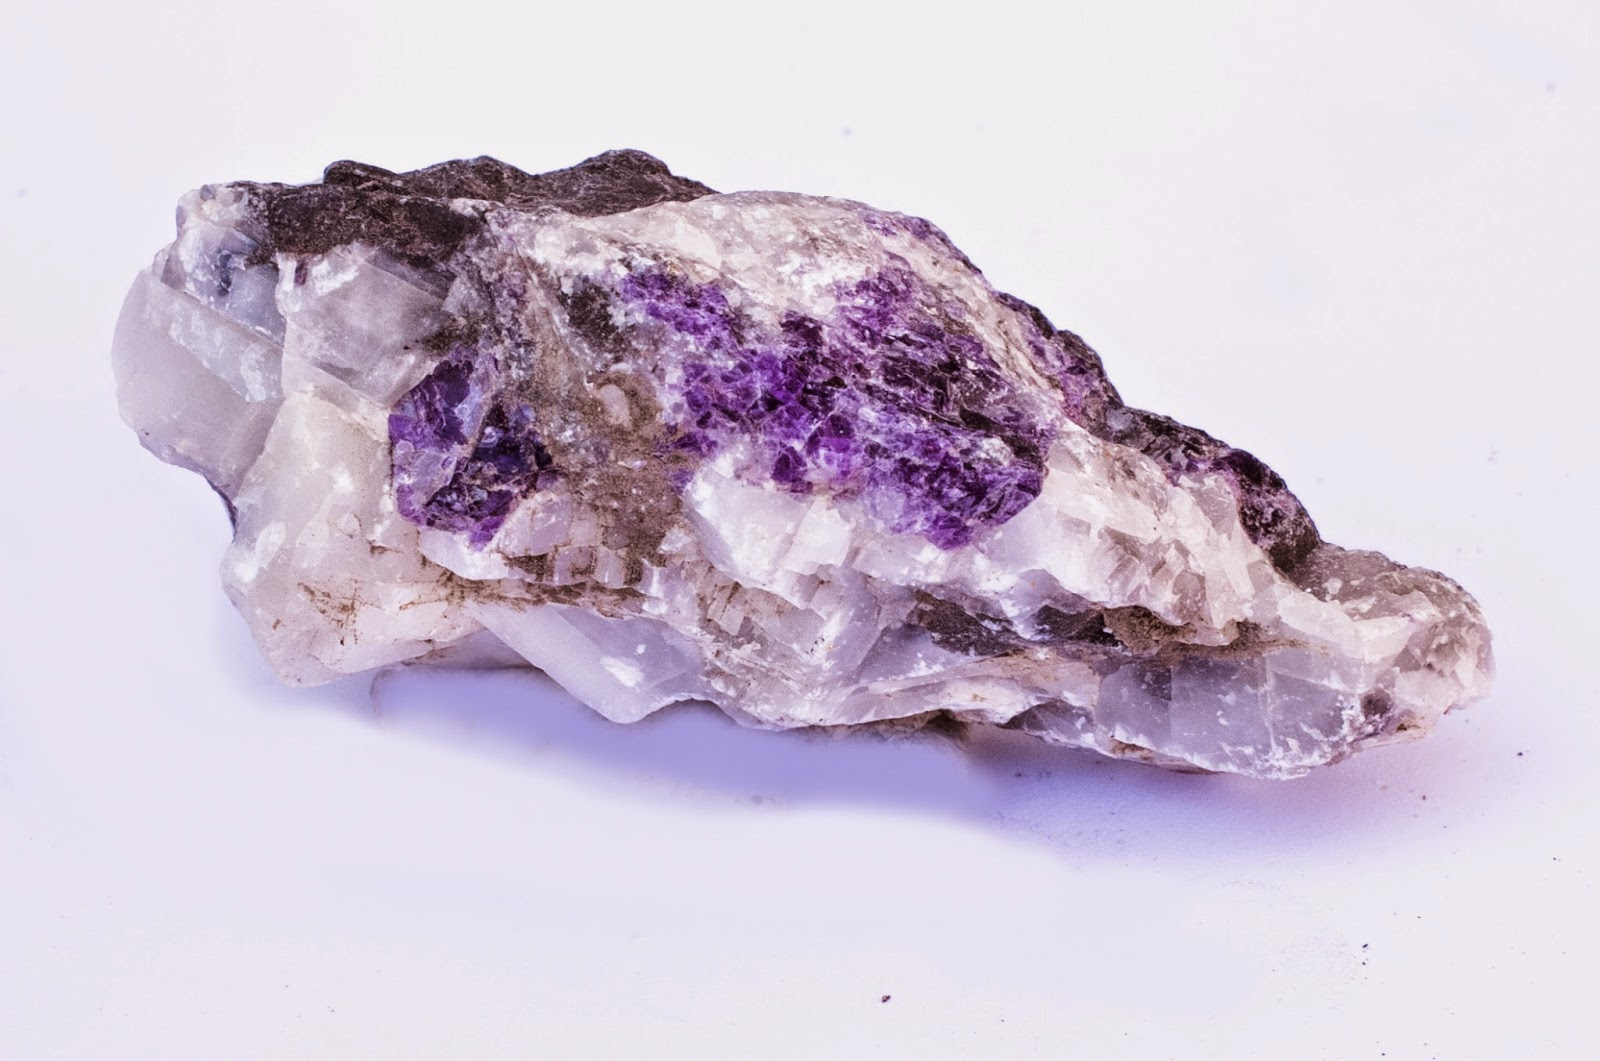 Mineral Bliss: In Middleburg, PA: The Other National